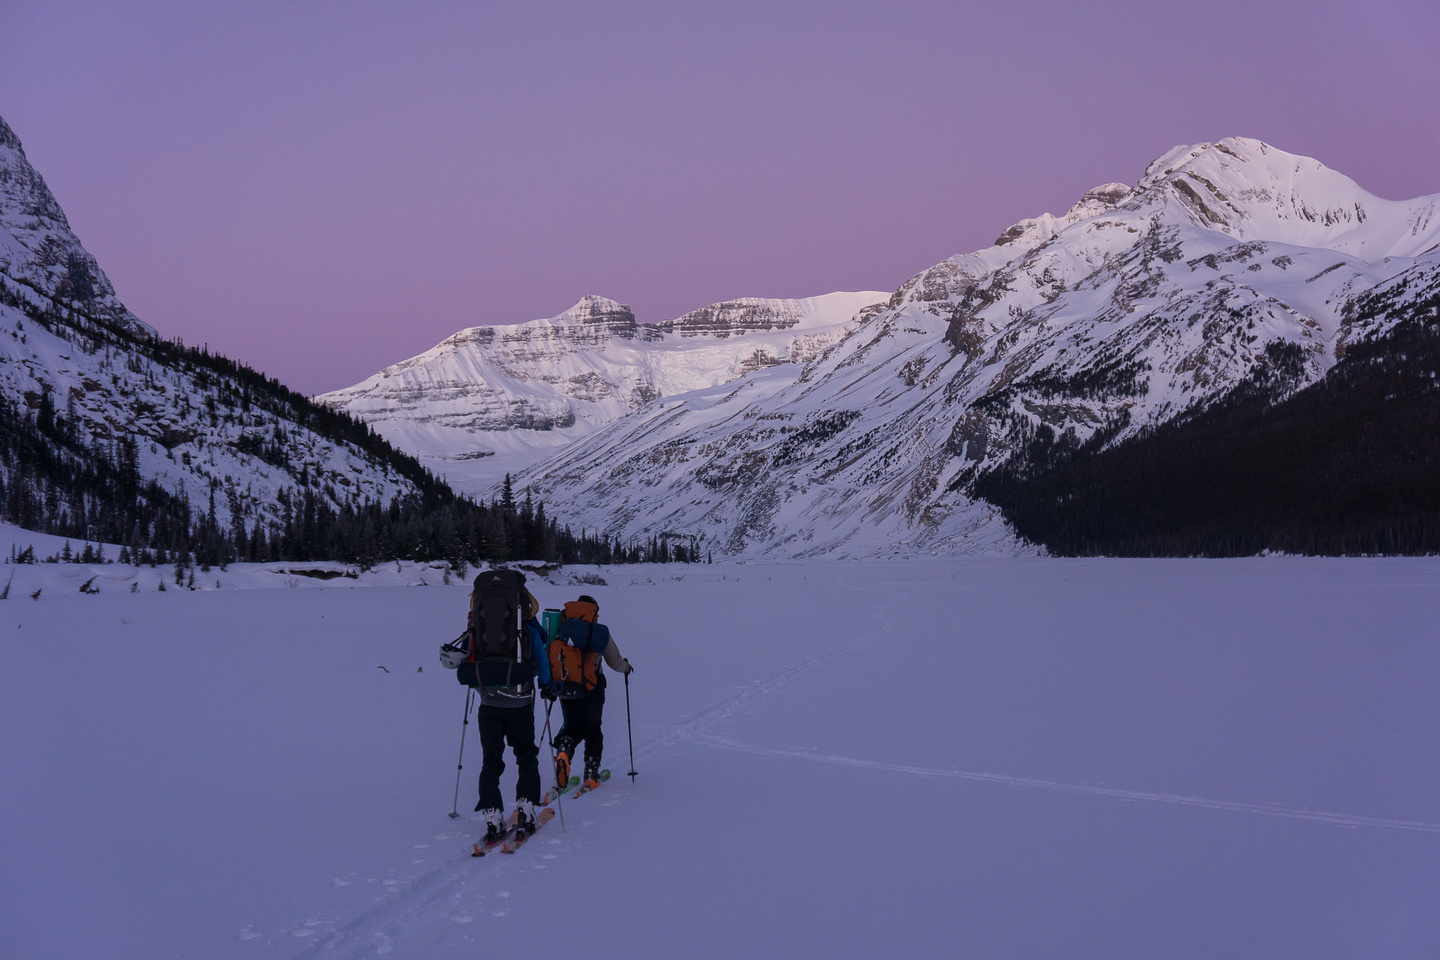 Crossing the lake, it's still early morning. On the right in the foreground is an outlier of Mount Athabasca. In the right background is Mount Andromeda.